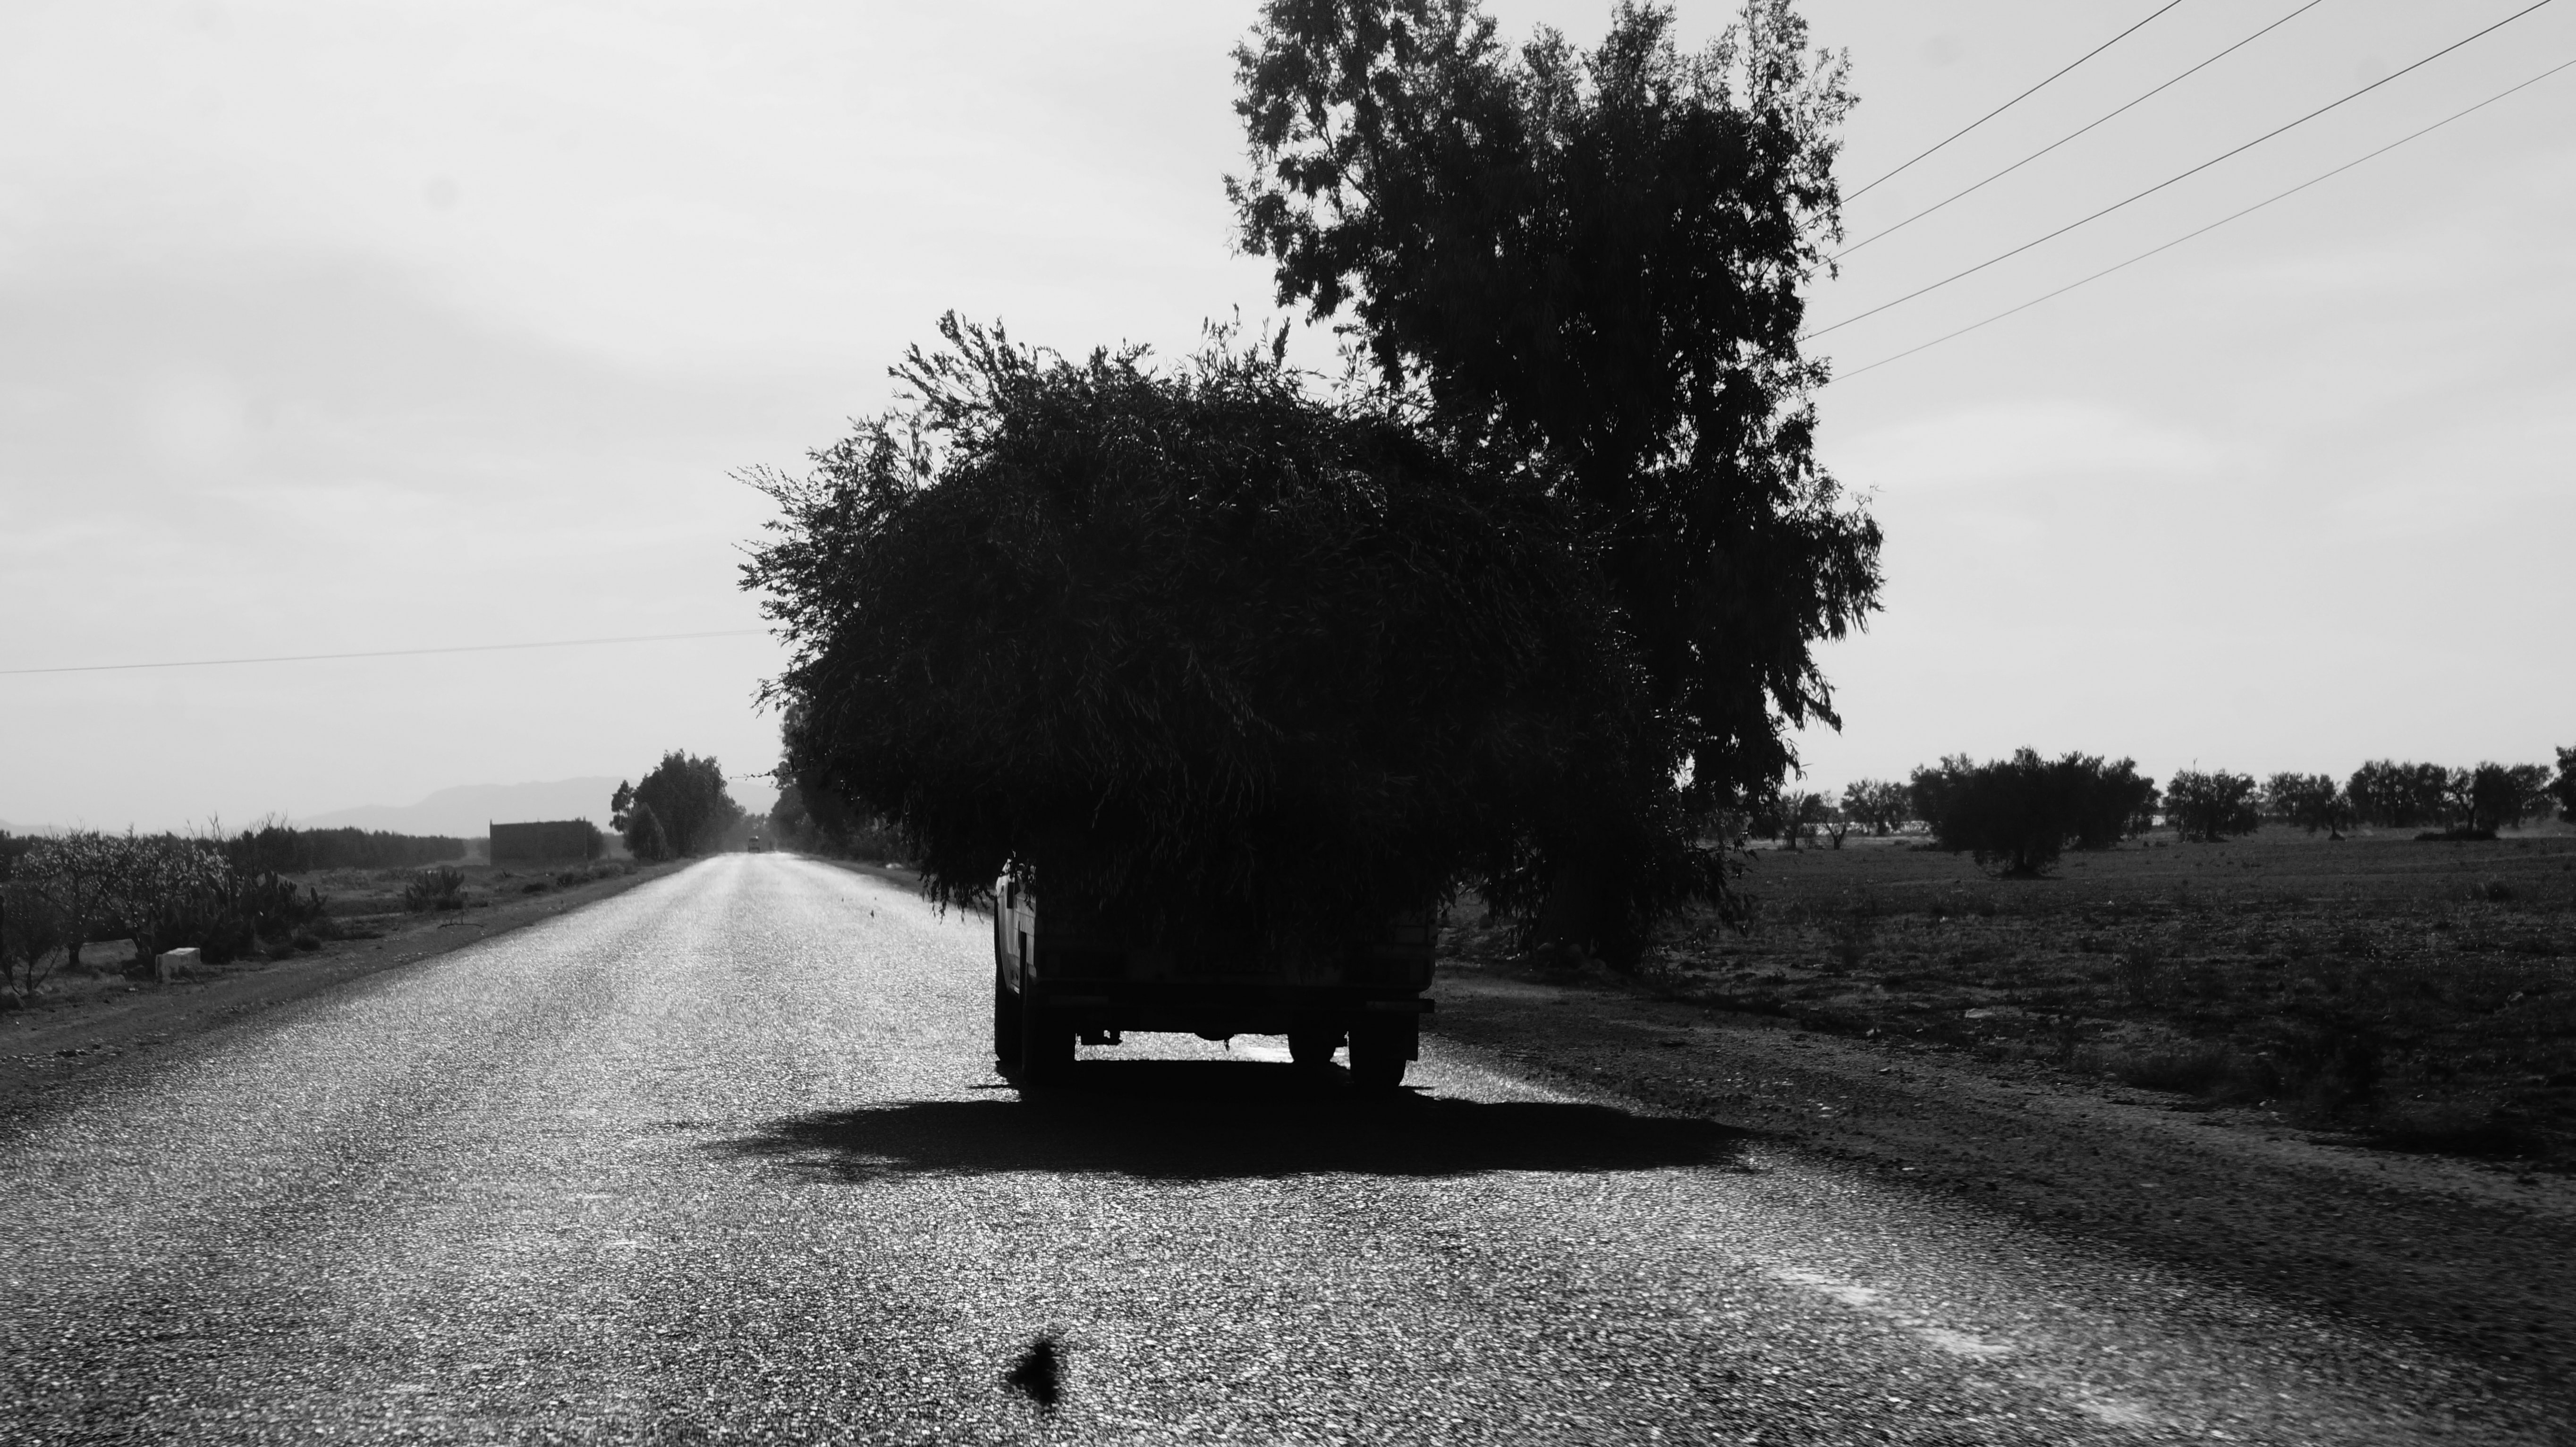 grayscale photography of vehicle carrying plant on road